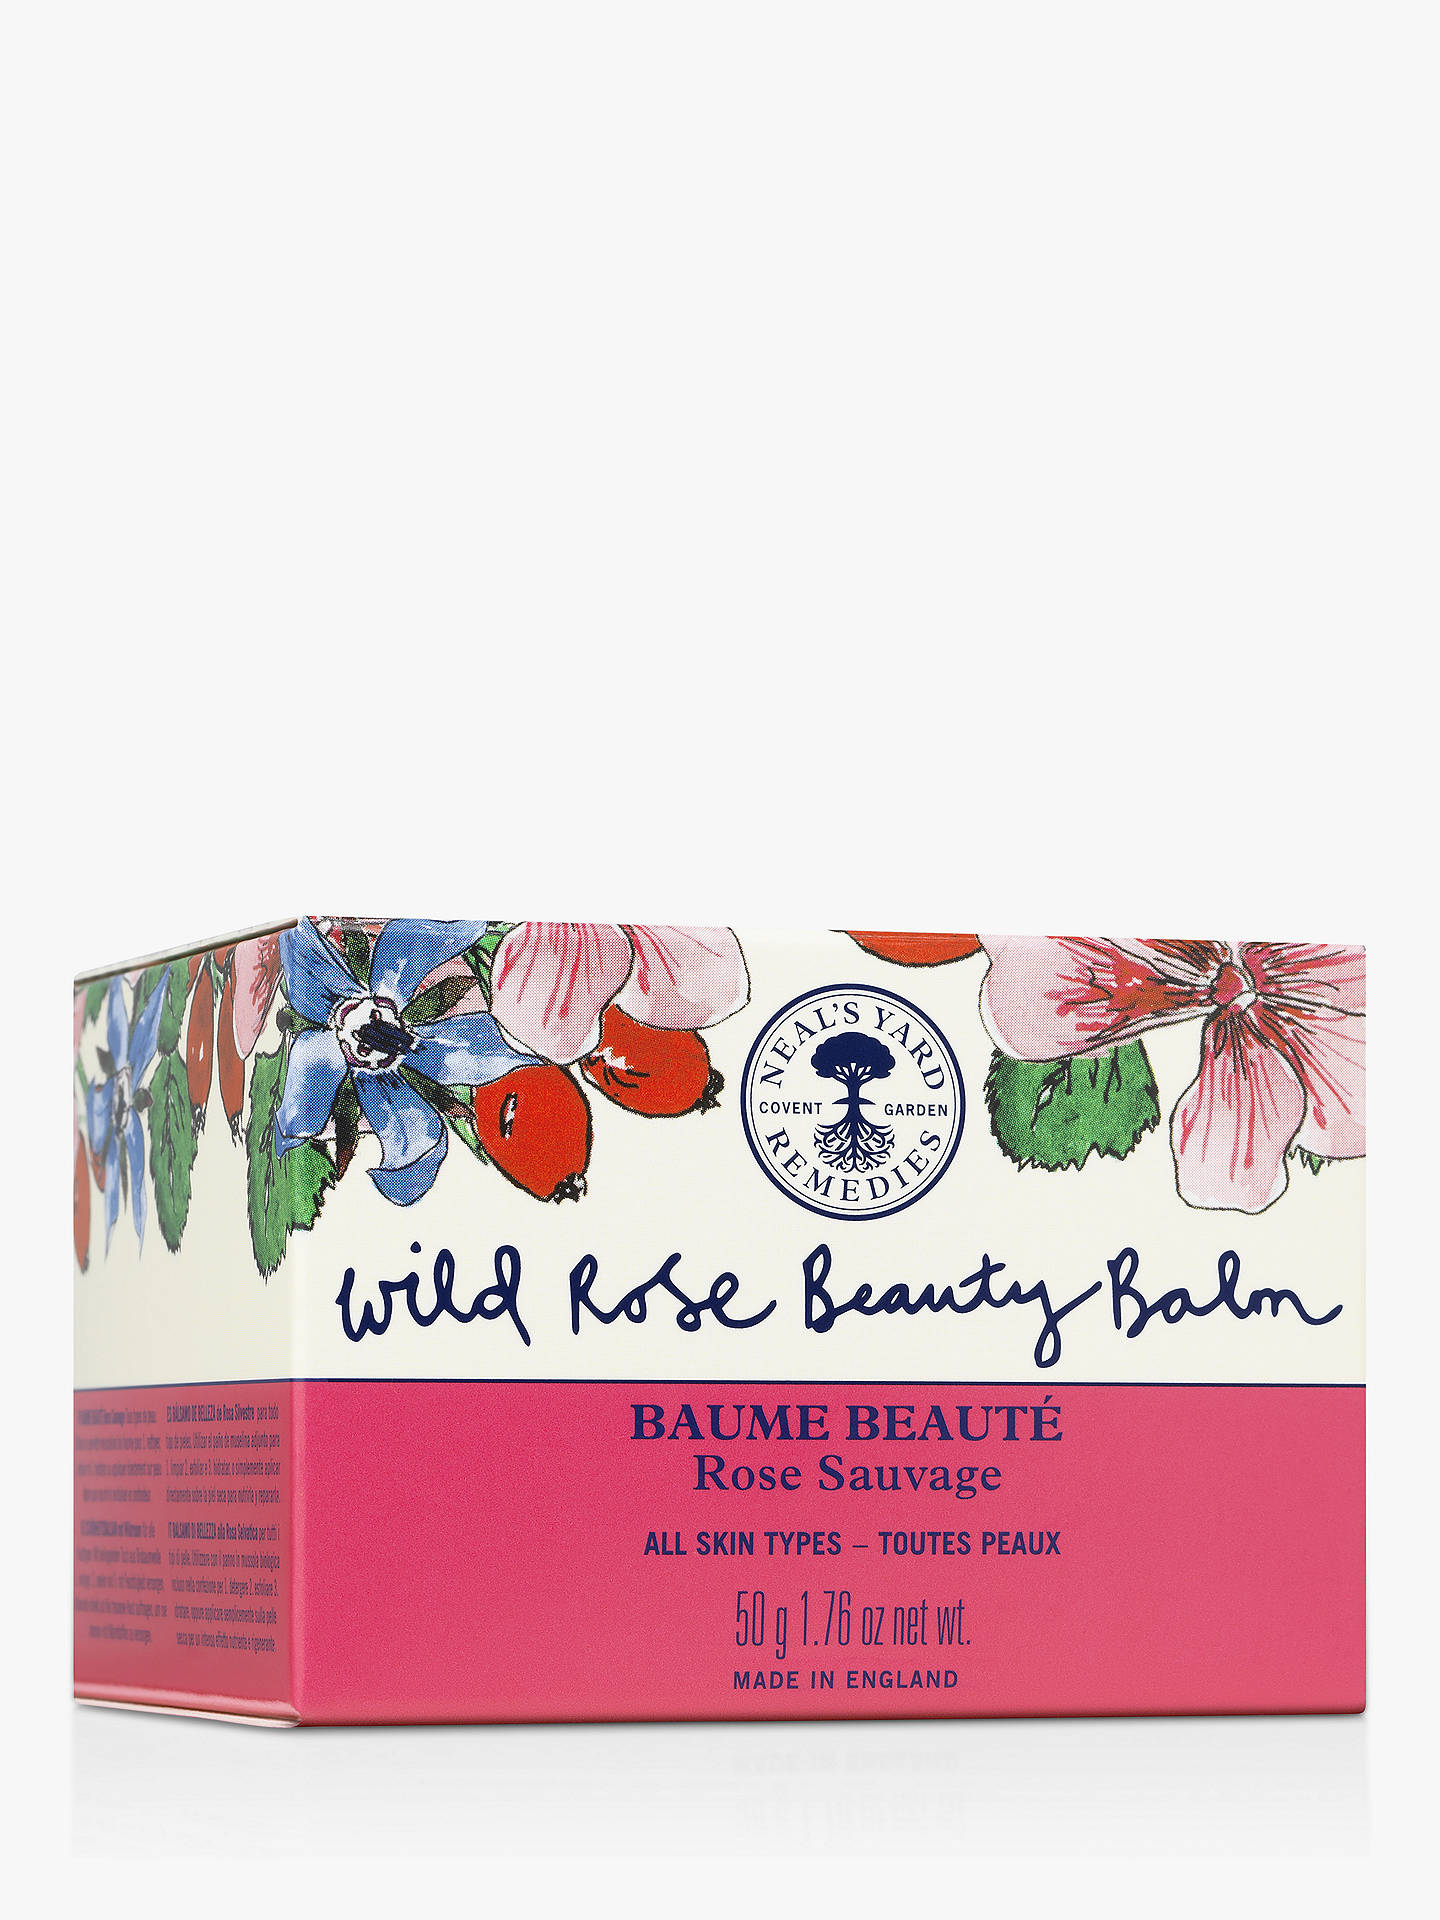 Buy Neal's Yard Remedies 10 Year Wild Rose Beauty Balm, 50g Online at johnlewis.com